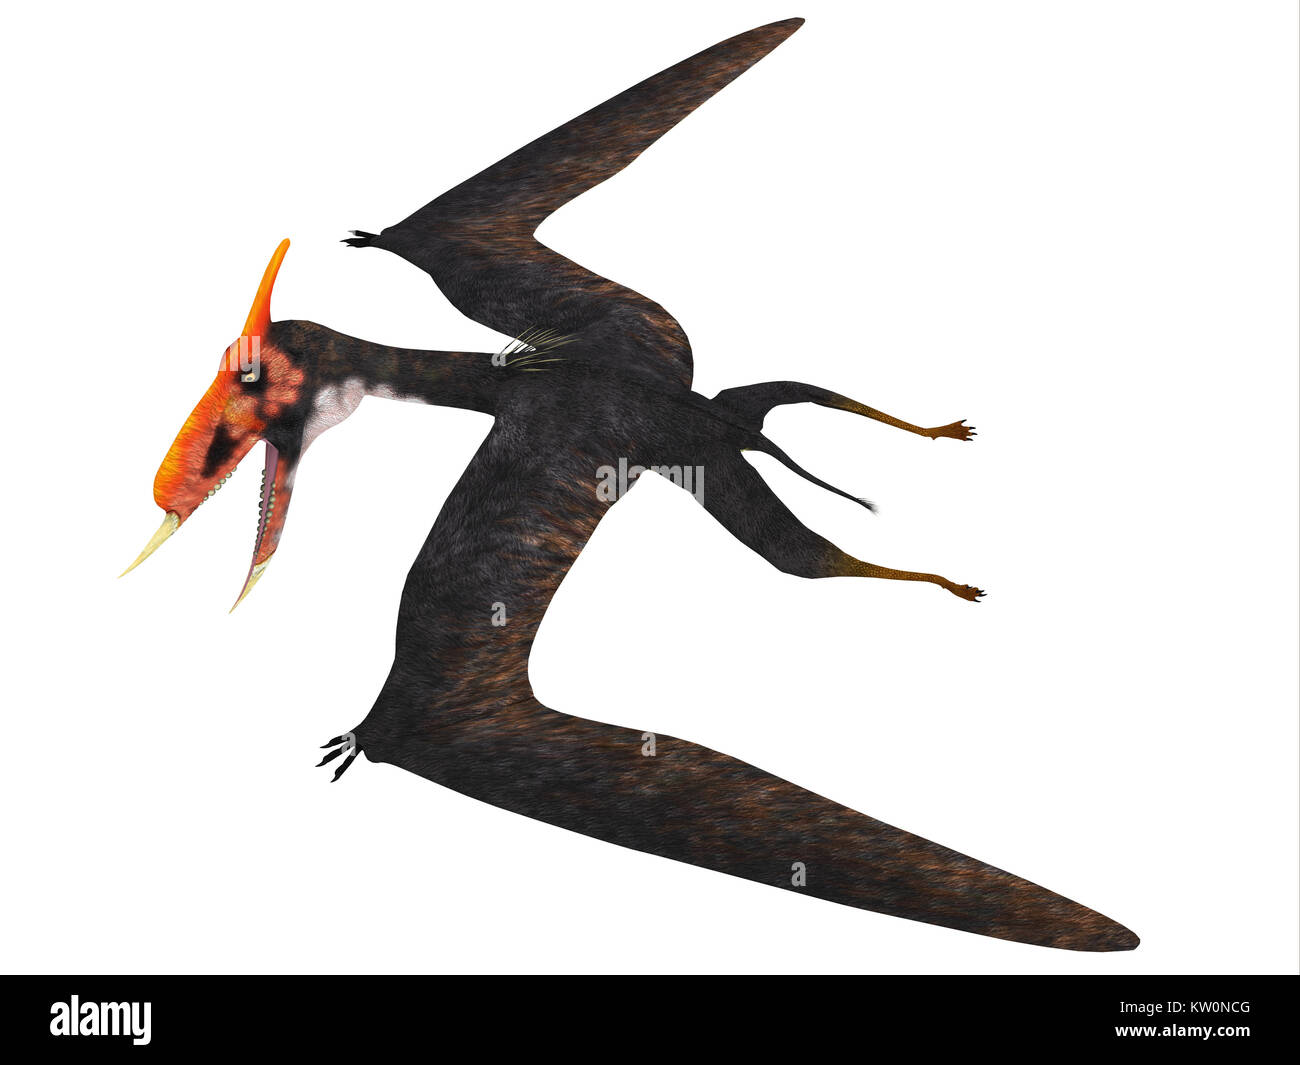 Dsungaripterus Reptile Side Profile - This carnivorous pterosaur lived in China in the Cretaceous Period and preyed - Stock Image